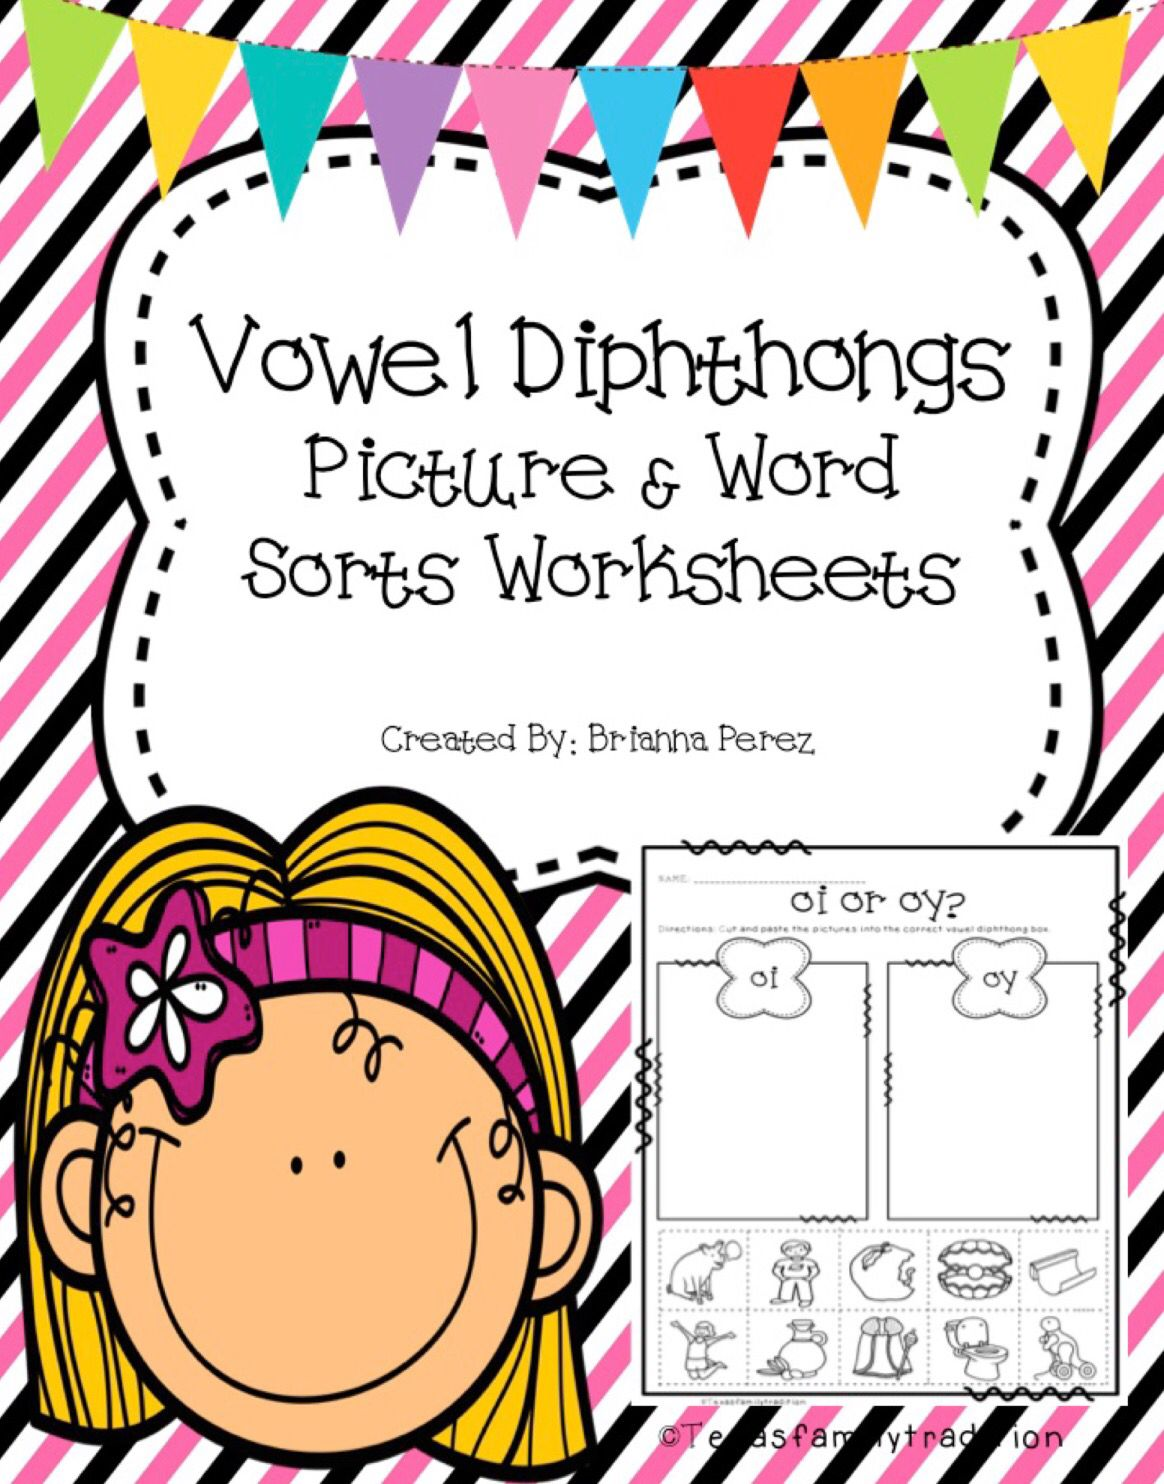 Vowel Diphth Gs W Ksheet S Ts W Ksheets Students Nd Ctivities